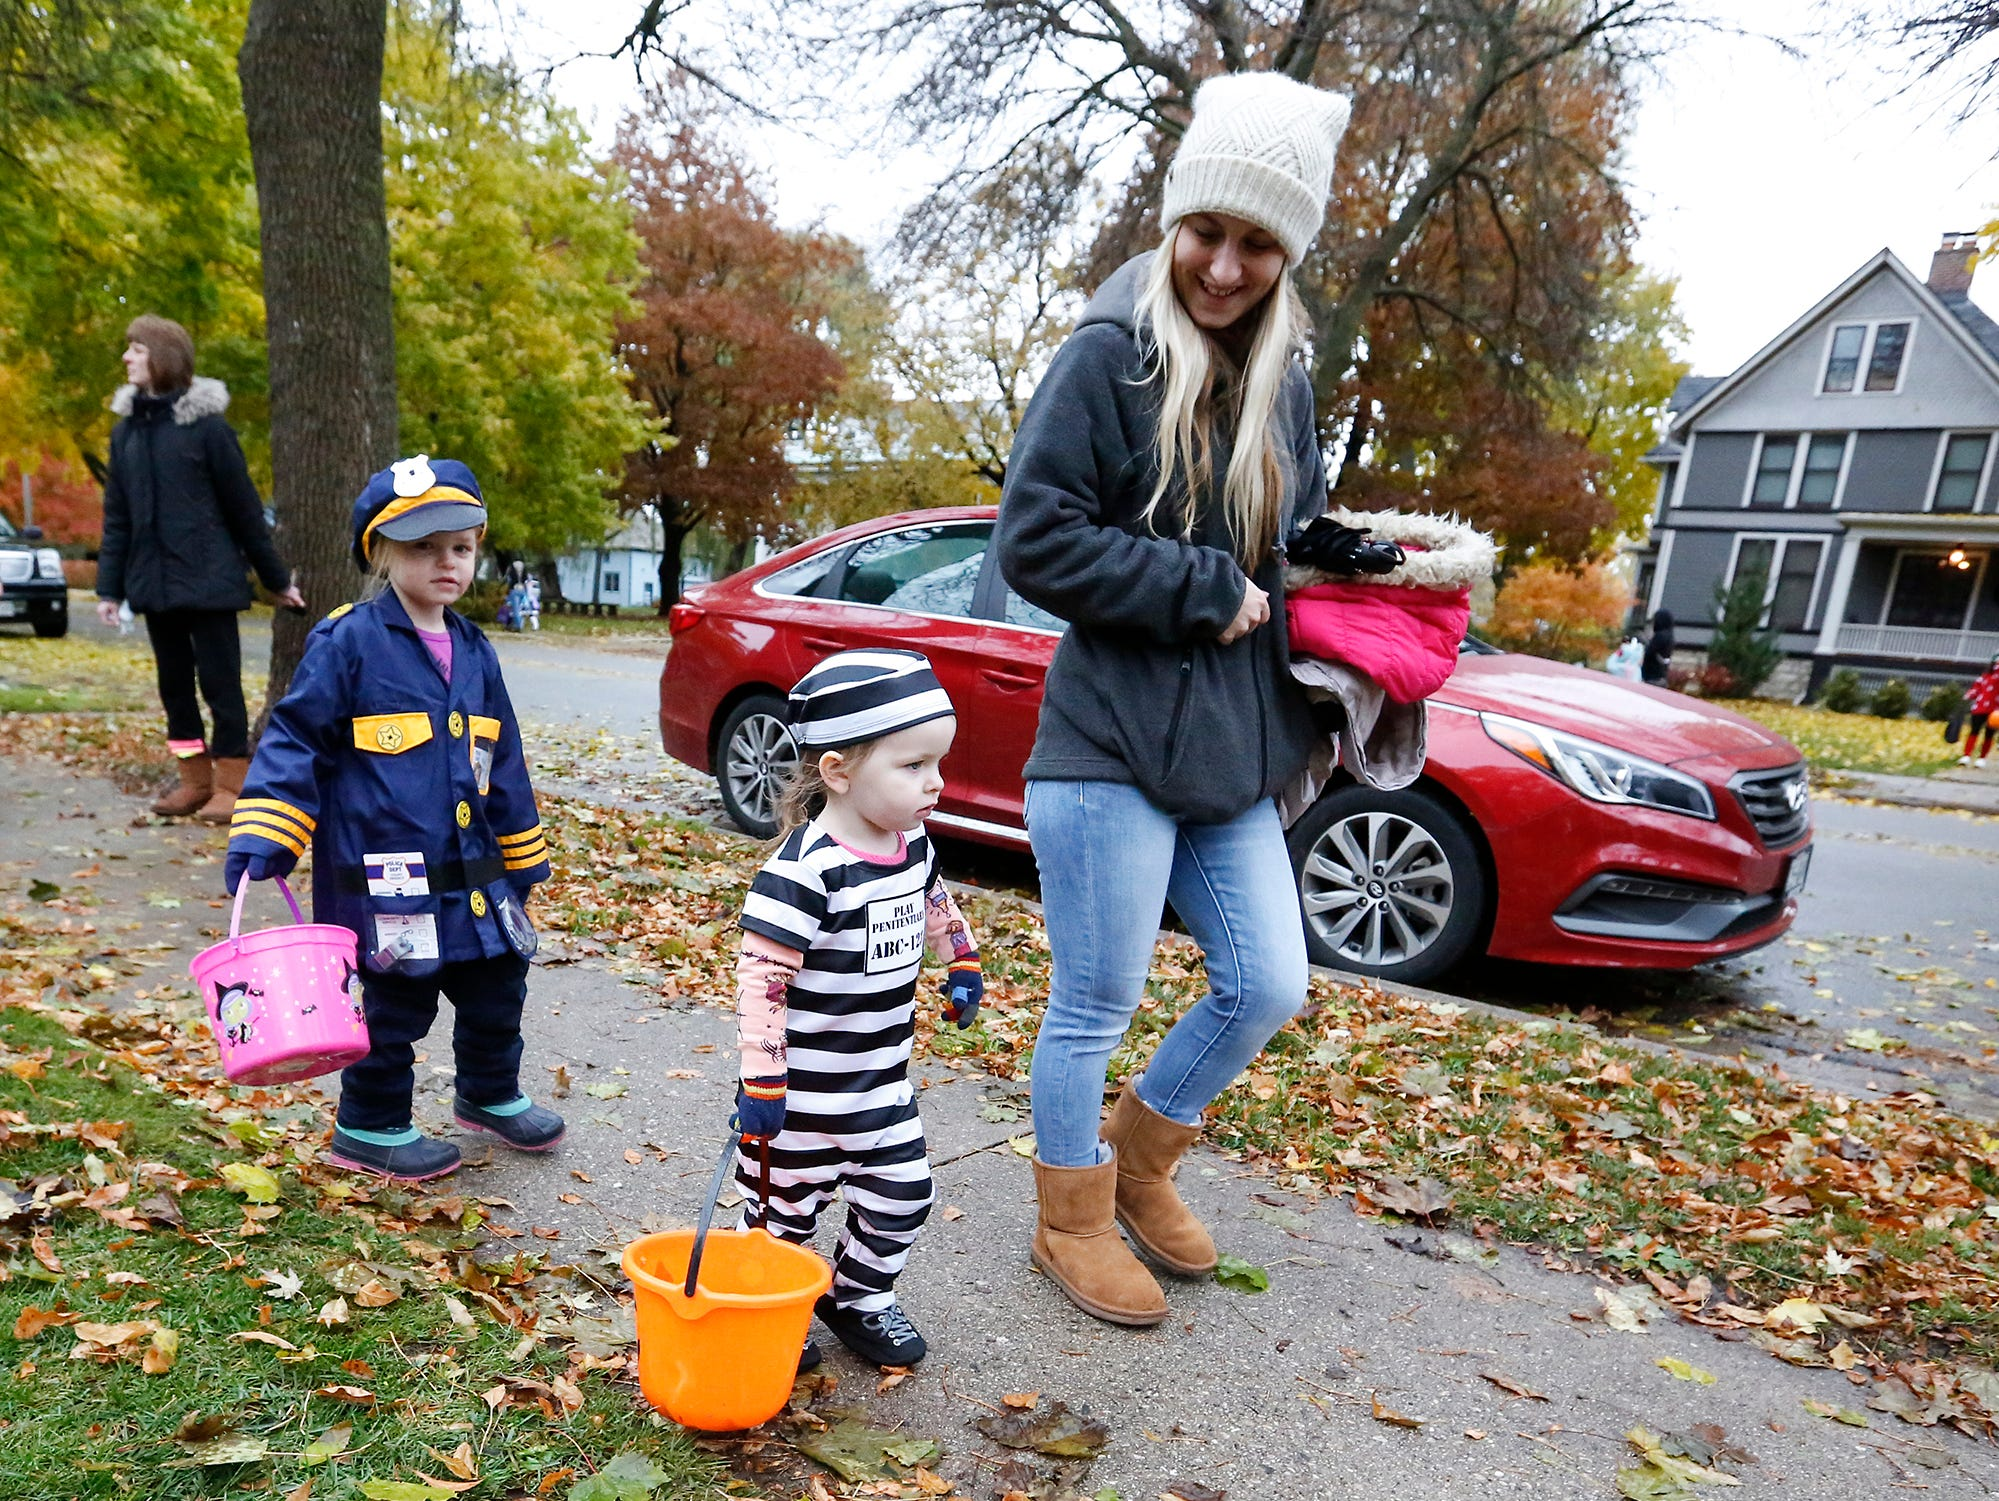 Nevaeh, Nalana and Natasha Potratz of Fond du Lac  were out trick or treating Sunday, October 28, 2018 in Fond du Lac, Wisconsin. Doug Raflik/USA TODAY NETWORK-Wisconsin